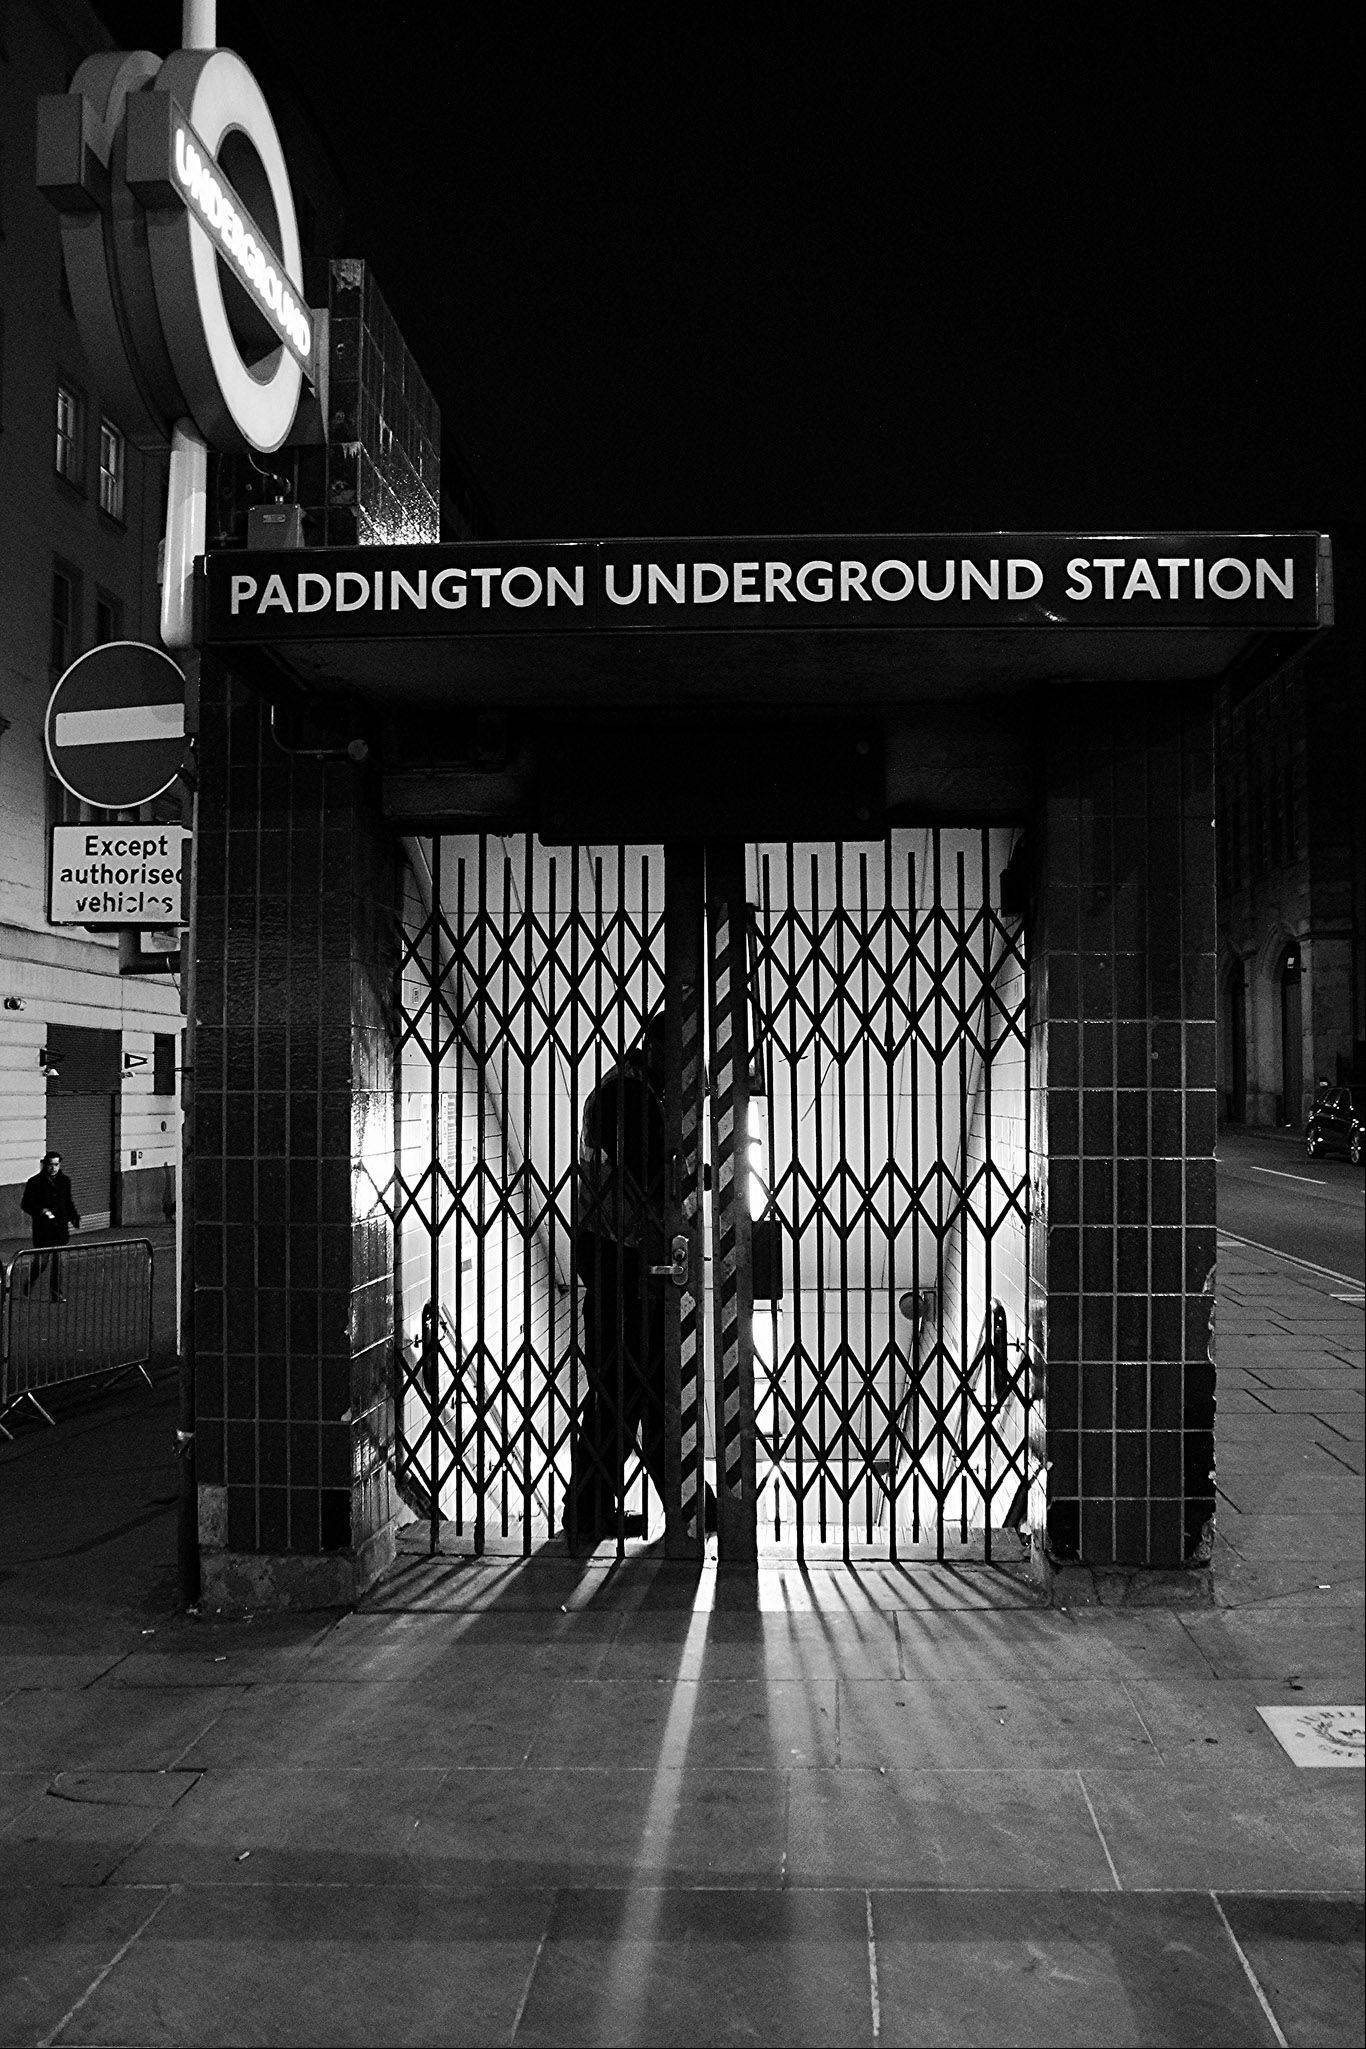 This was taken in London on the 150th Anniversary of the London Underground. The maintenance man is locking the gate to the Paddington Underground Station. I really liked the night scene and the dramatic shadows in the image. I call it �Locking Up The Underground�